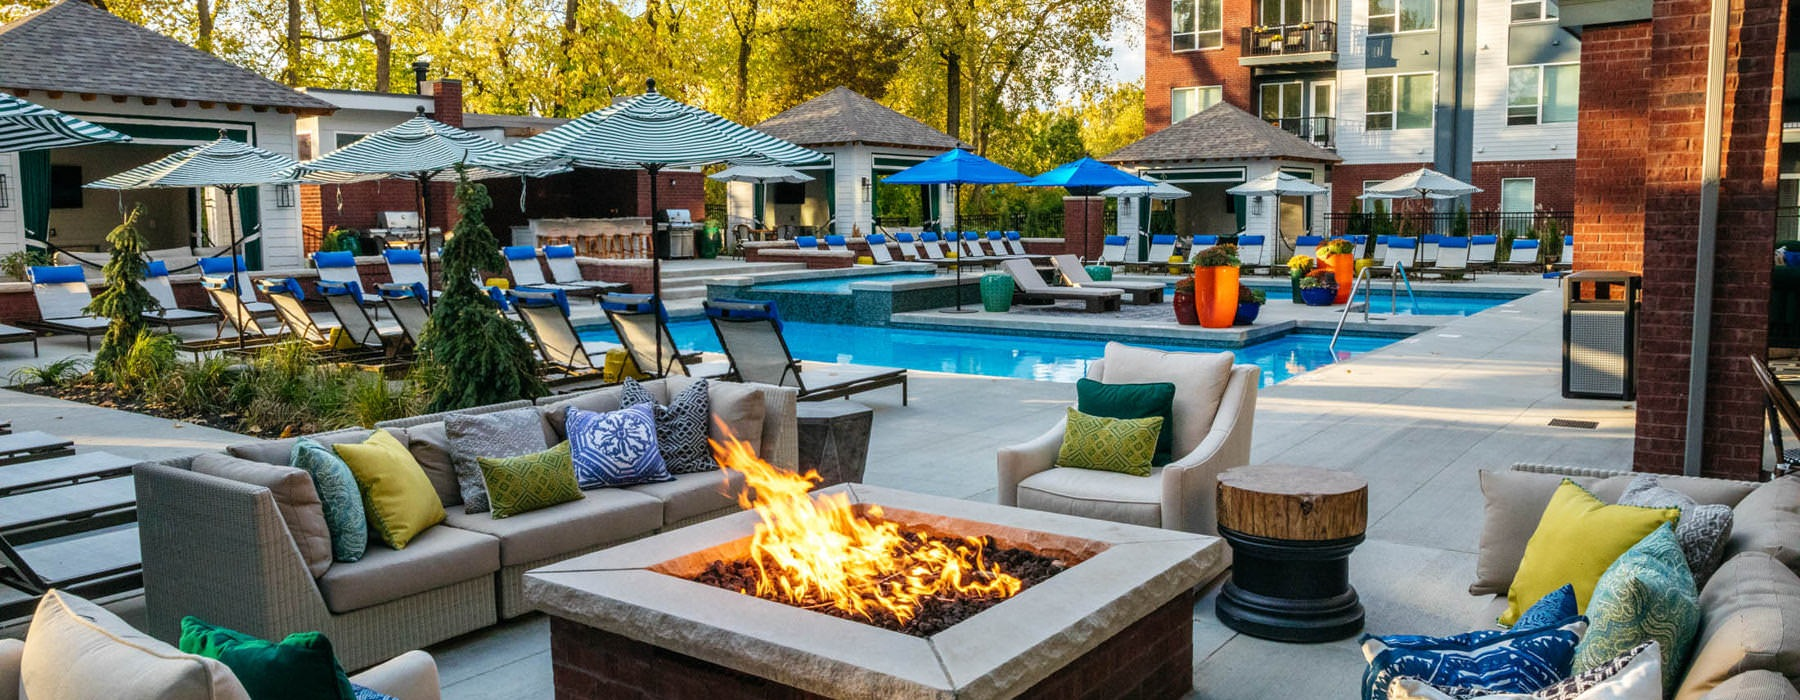 fire pit near outdoor swimming pool and covered cabana